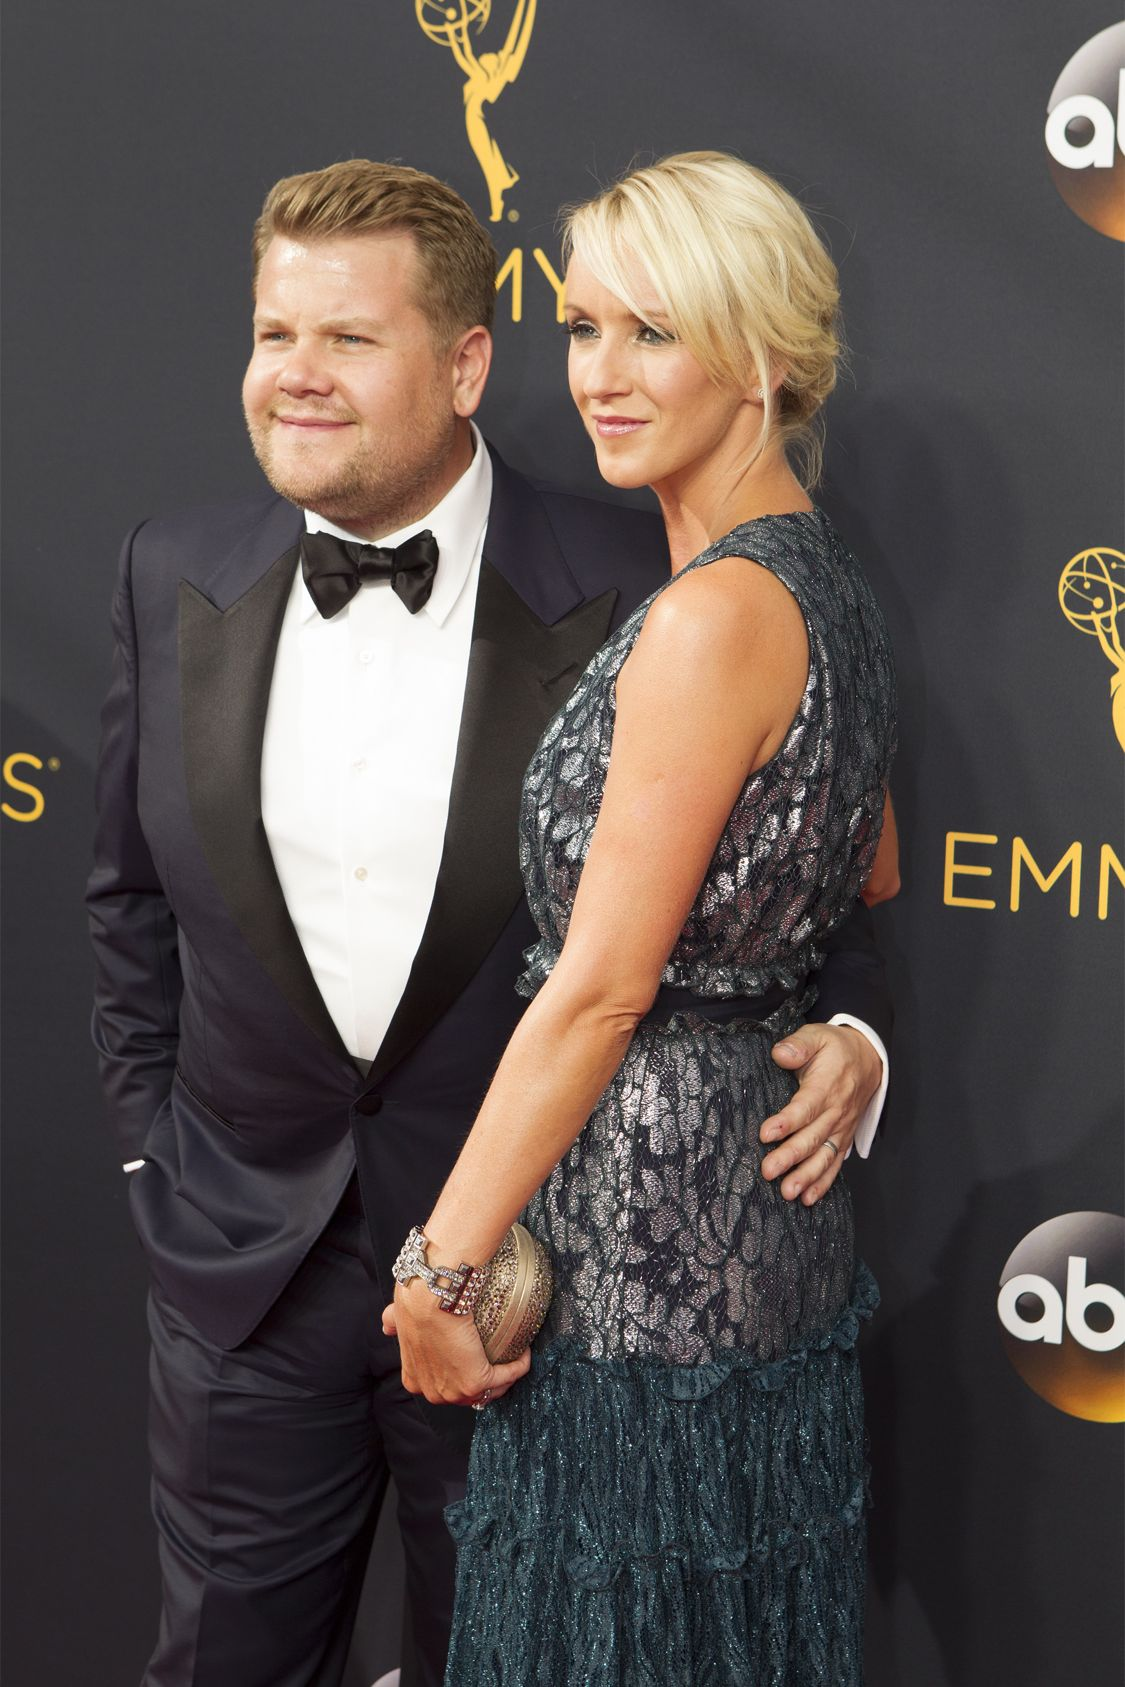 """THE 68TH EMMY(r) AWARDS - """"The 68th Emmy Awards"""" broadcasts live from The Microsoft Theater in Los Angeles, Sunday, September 18 (7:00-11:00 p.m. EDT/4:00-8:00 p.m. PDT), on ABC and is hosted by Jimmy Kimmel. (ABC/Rick Rowell) JAMES CORDEN"""